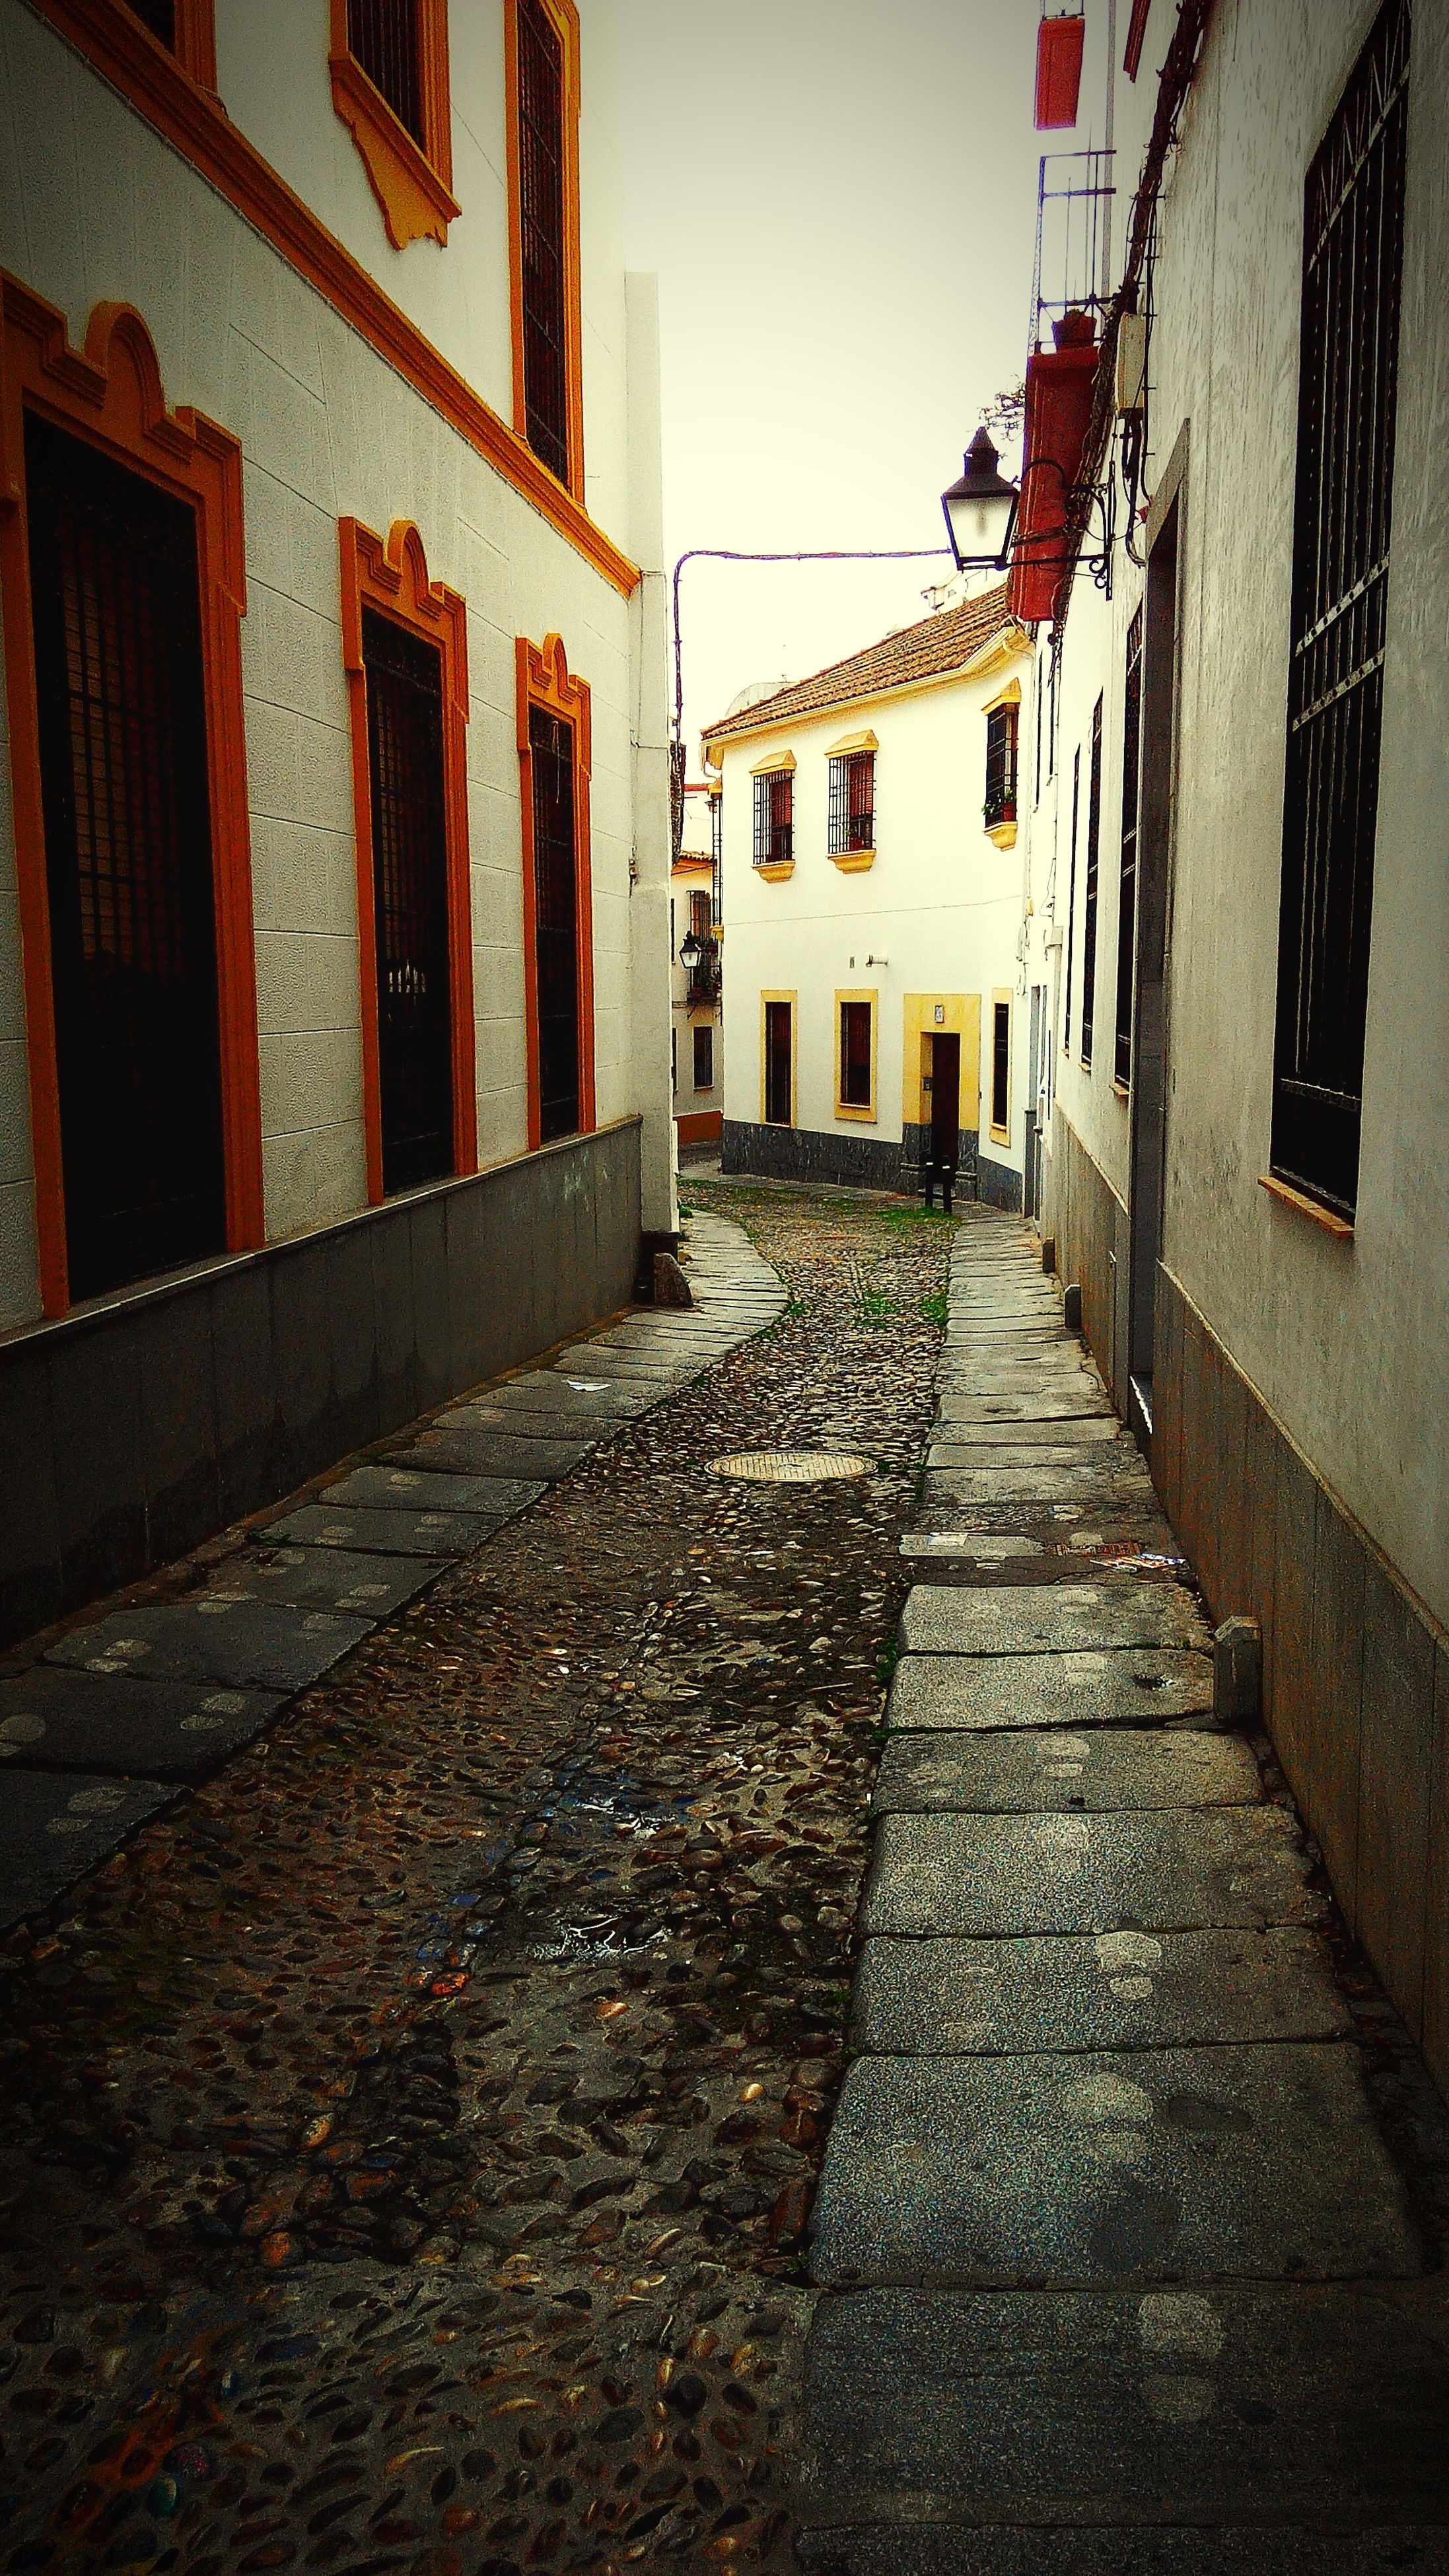 architecture, built structure, building exterior, the way forward, cobblestone, residential structure, residential building, diminishing perspective, street, building, house, alley, narrow, walkway, vanishing point, pathway, city, footpath, empty, outdoors